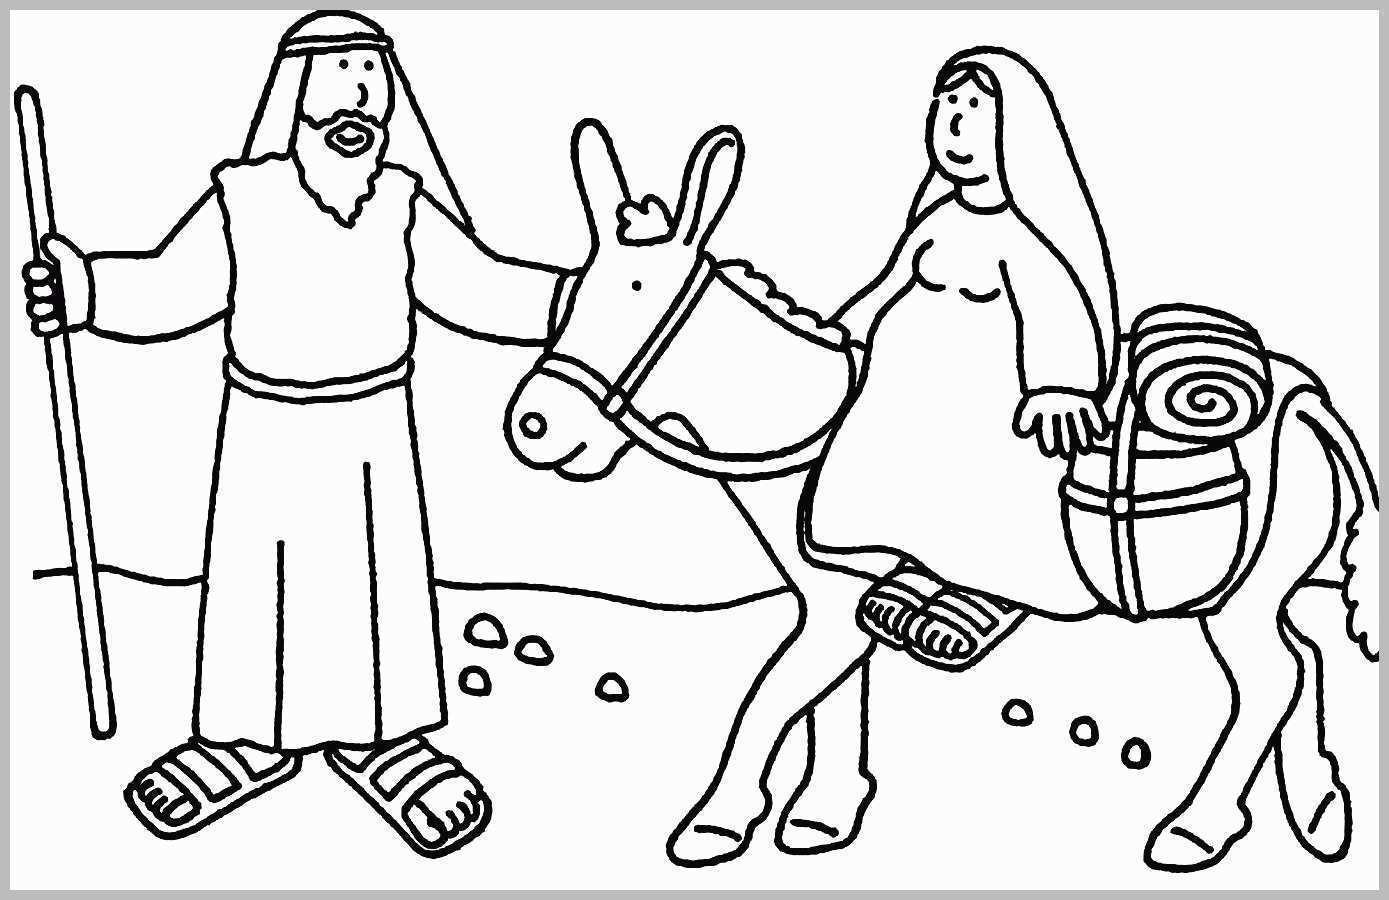 Coloring Pages : Bibleg For Kids Pages Preschoolers Pretty Free - Free Printable Christmas Story Coloring Pages